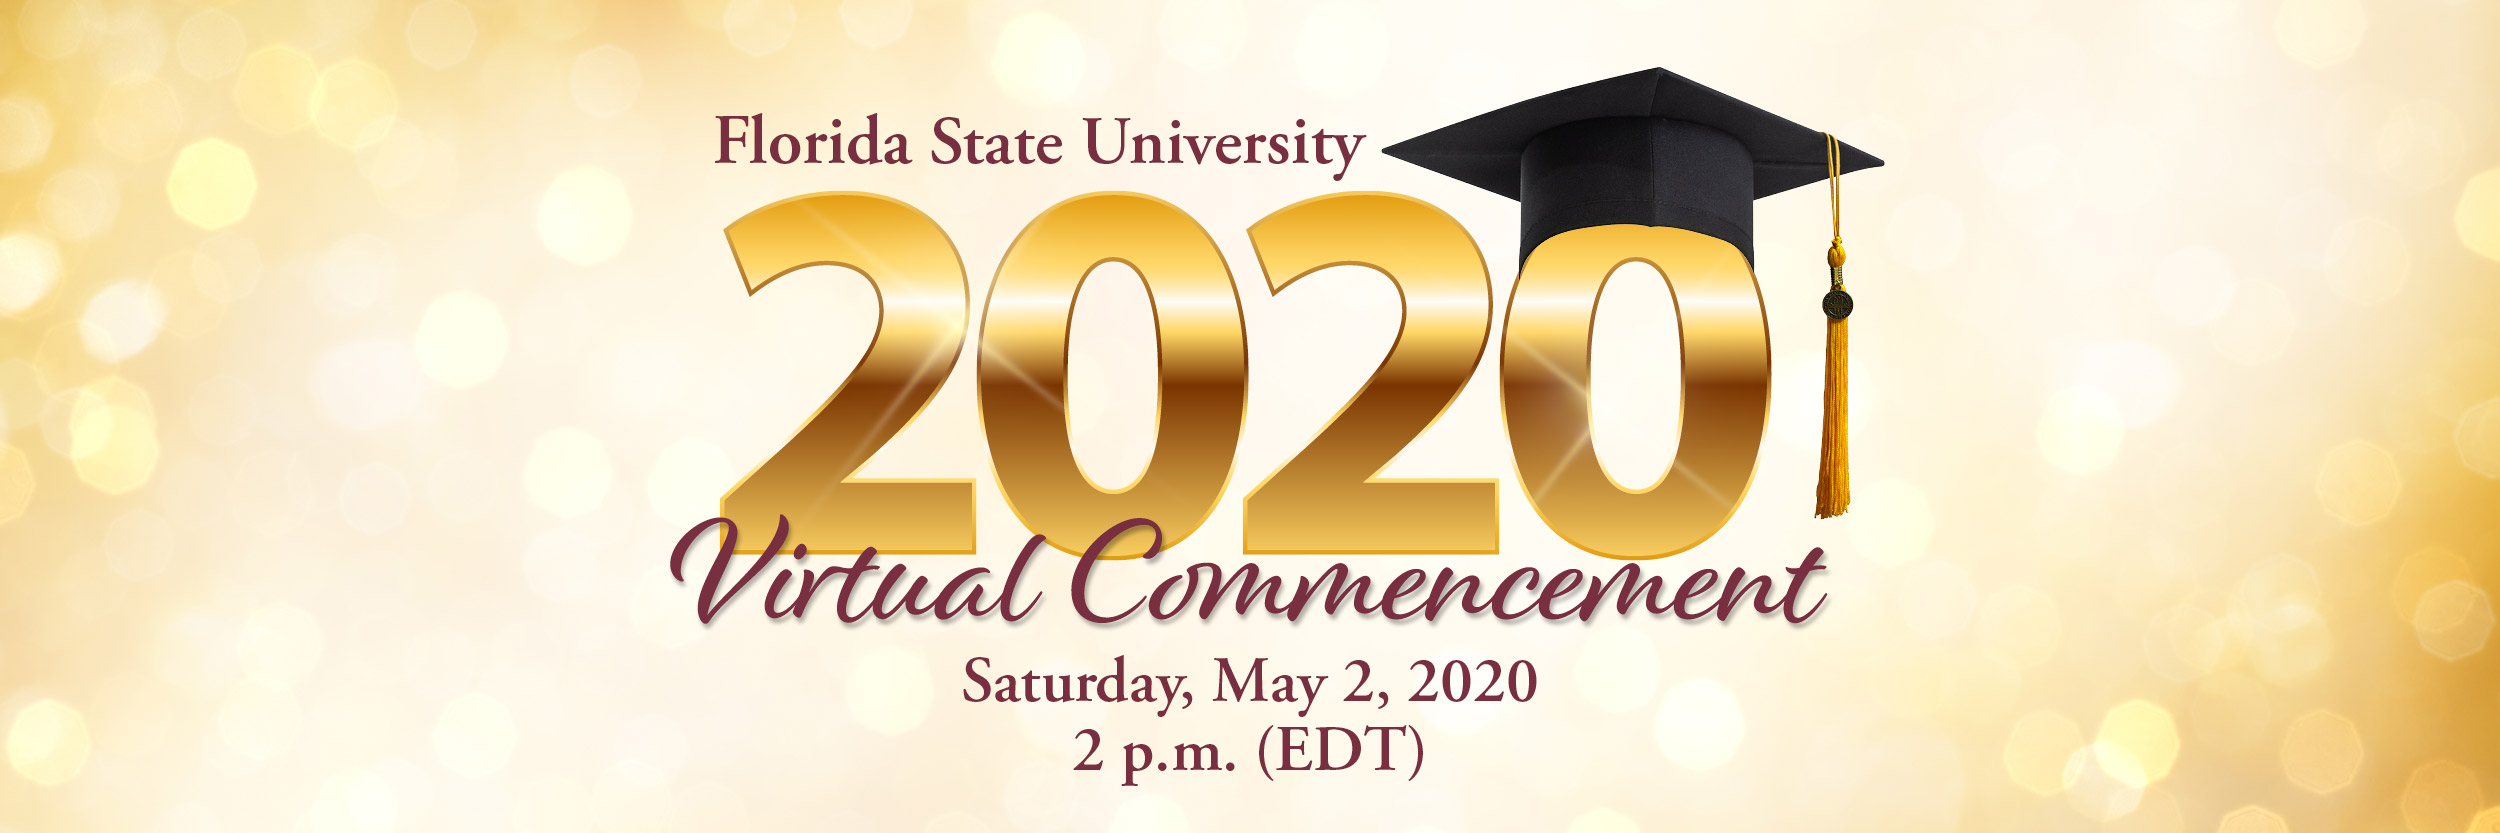 Florida State University 2020 Virtual Commencement. Saturday, May 2, 2020 at 2 p.m. (EDT)